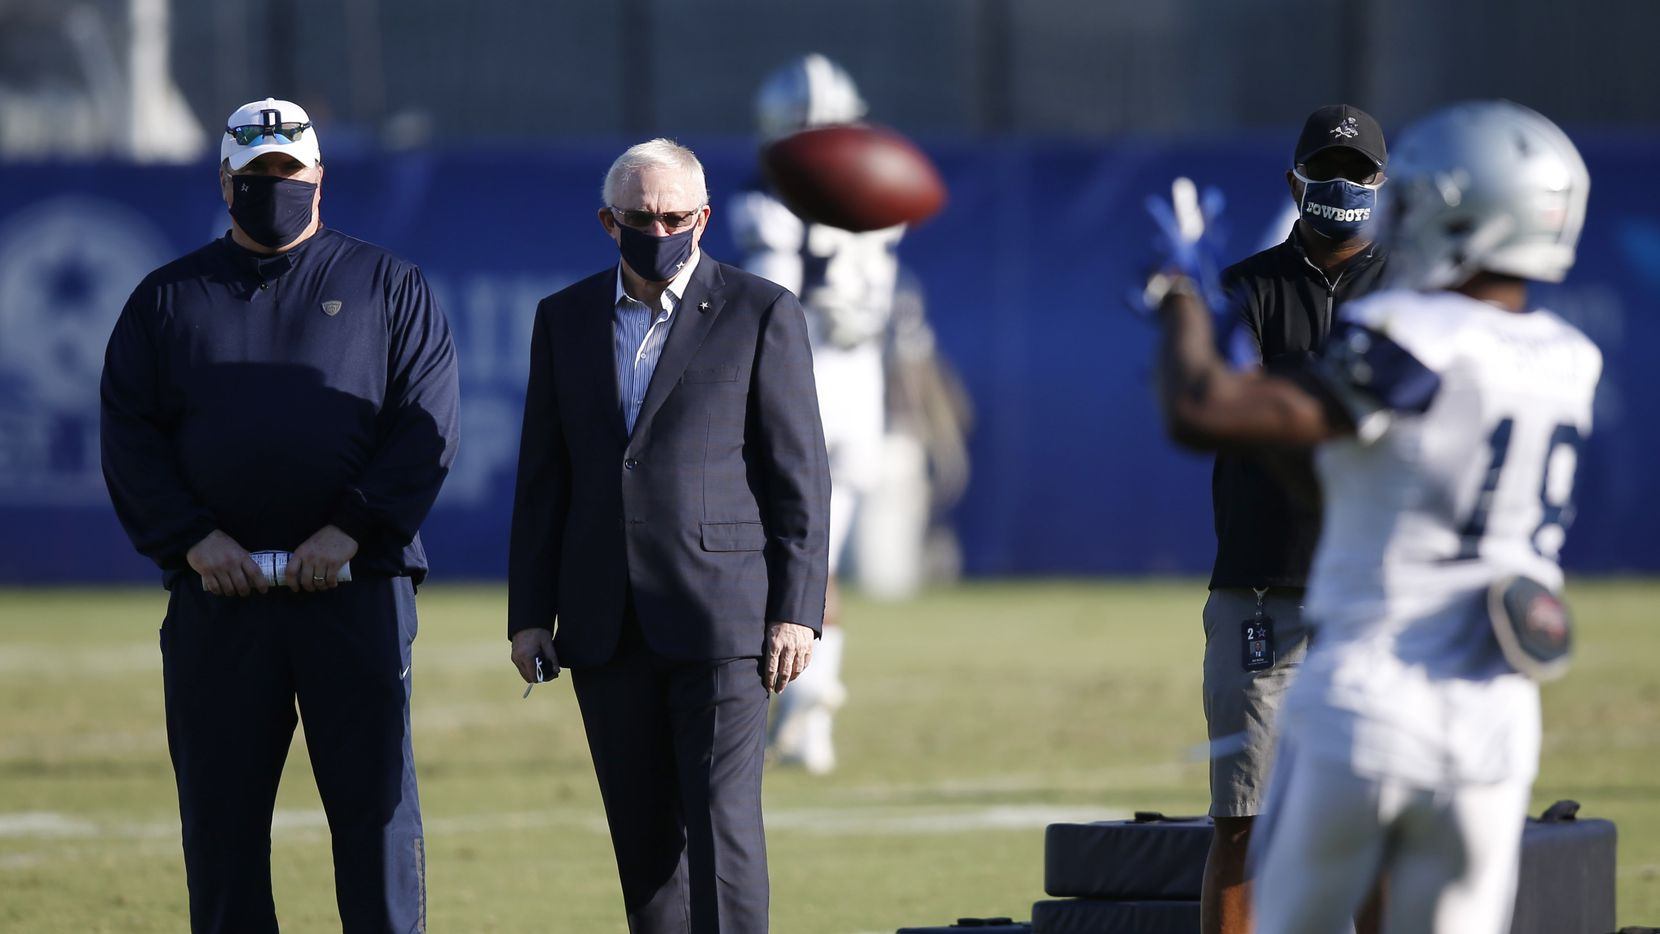 Dallas Cowboys head coach Mike McCarthy and Dallas Cowboys owner and general manager Jerry Jones watch Dallas Cowboys wide receiver Aaron Parker (18) run through drills during training camp at the Dallas Cowboys headquarters at The Star in Frisco, Texas on Friday, August 21, 2020.